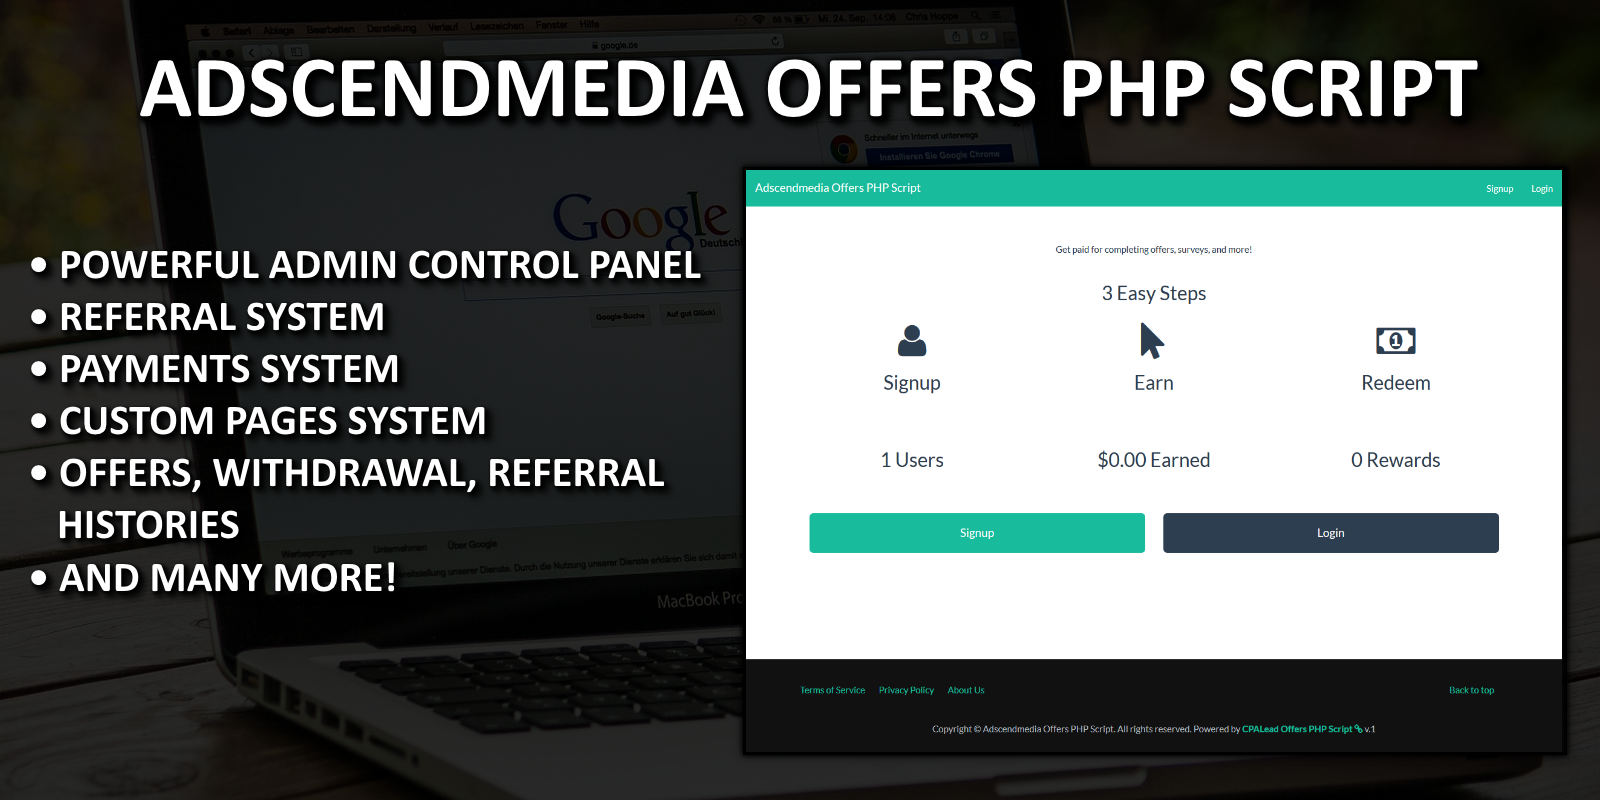 Adscendmedia Offers PHP Script